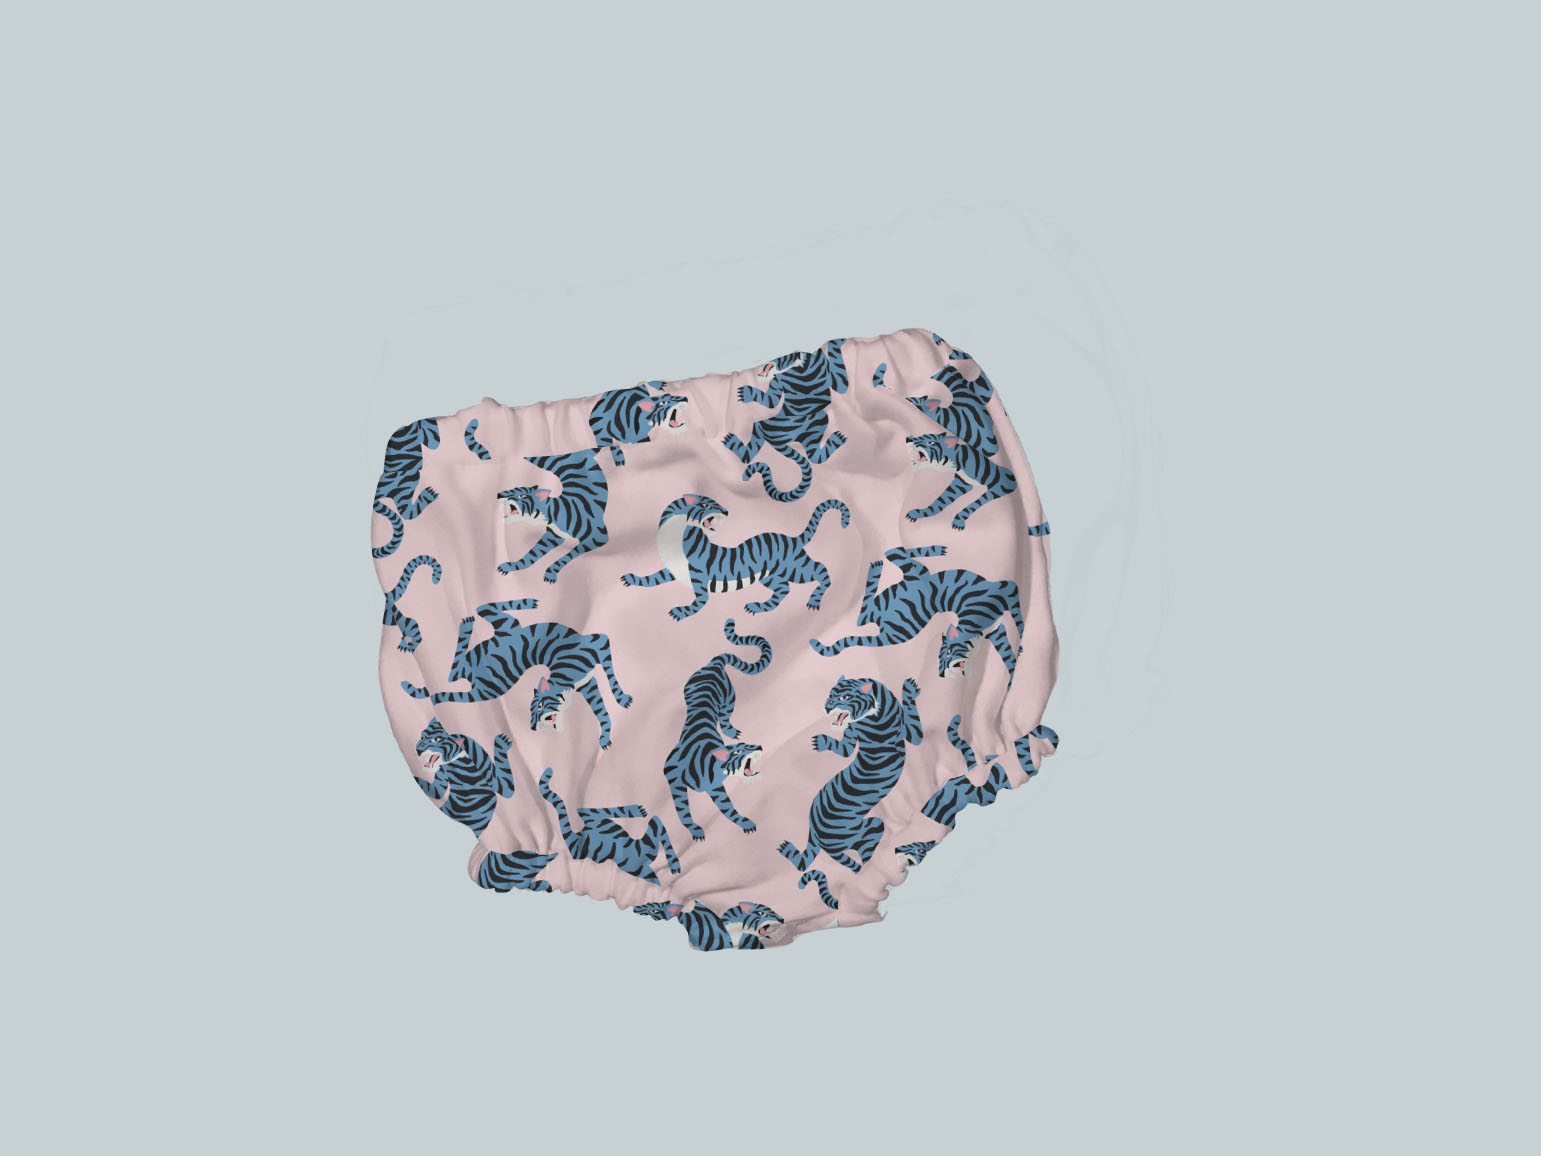 Bummies/Diaper Cover - Blue & Pink Tigers